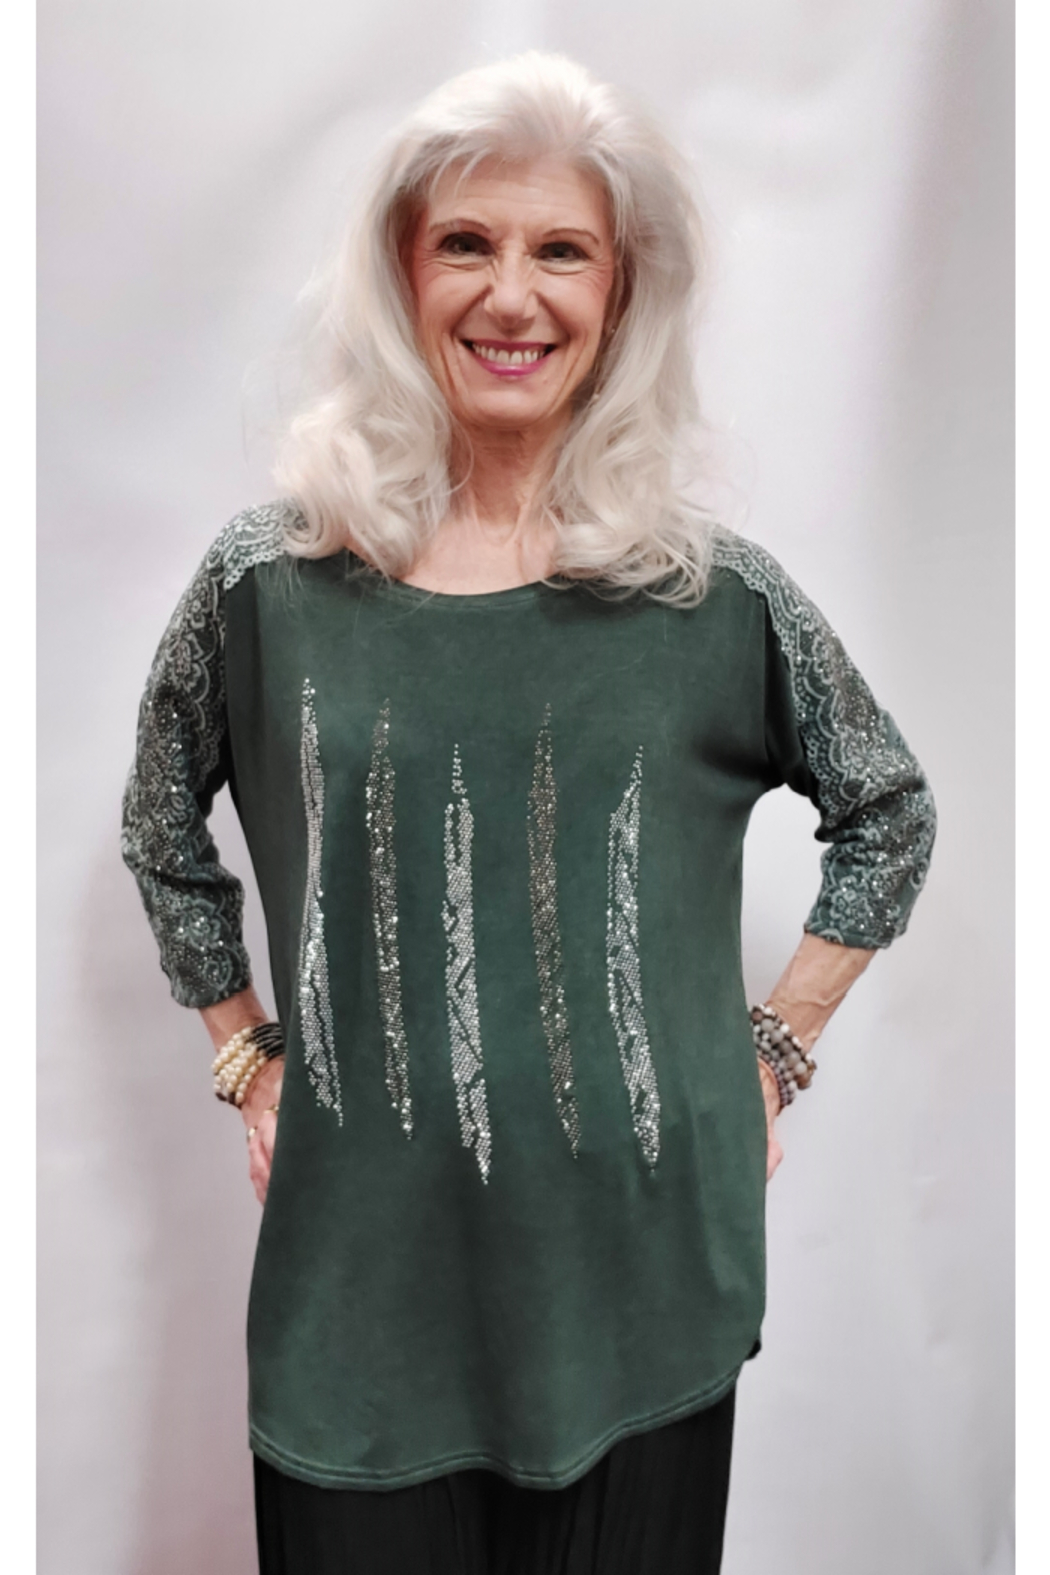 Apparel Love Silver Stone Embellished Olive Top - Main Image